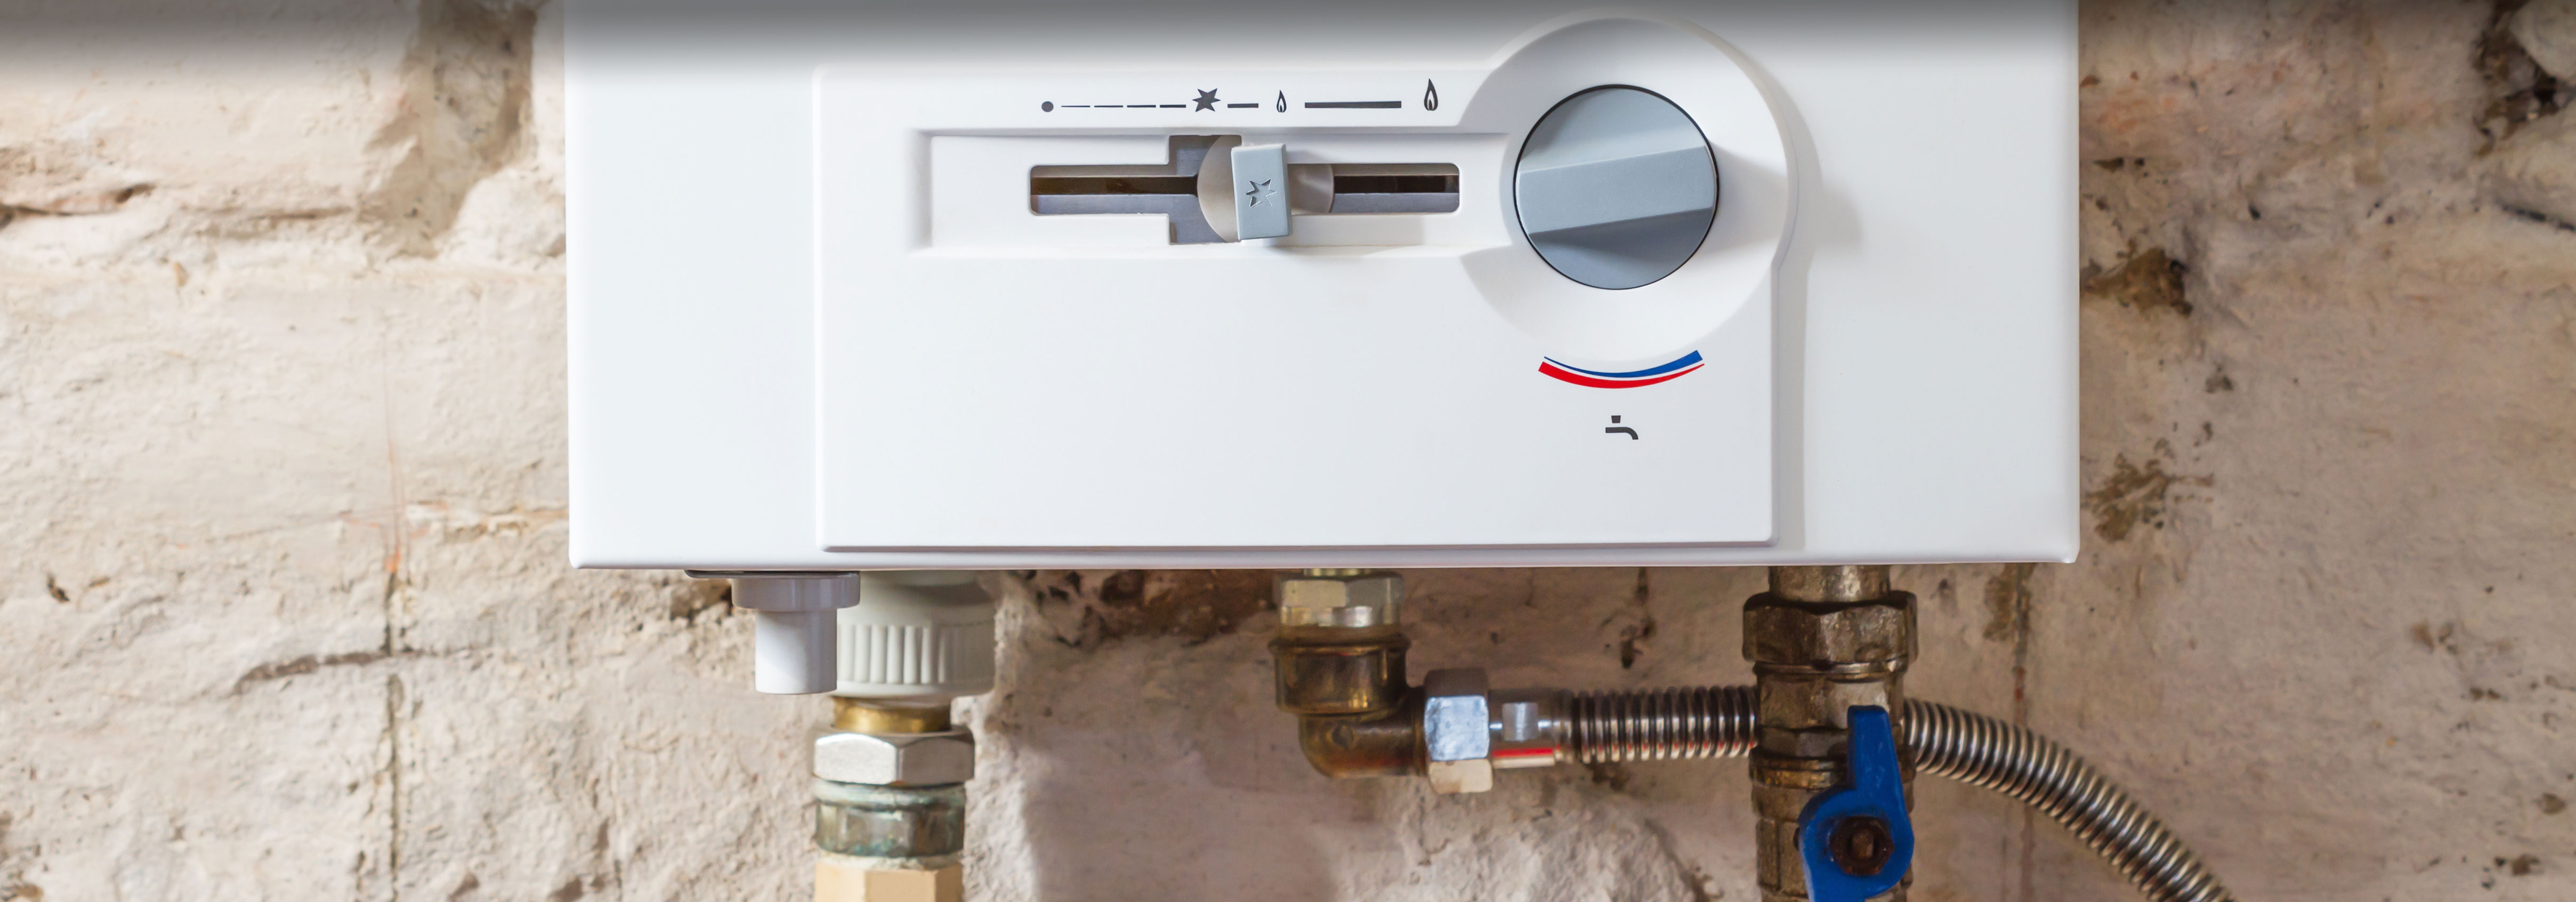 boiler-replacement-costs-60